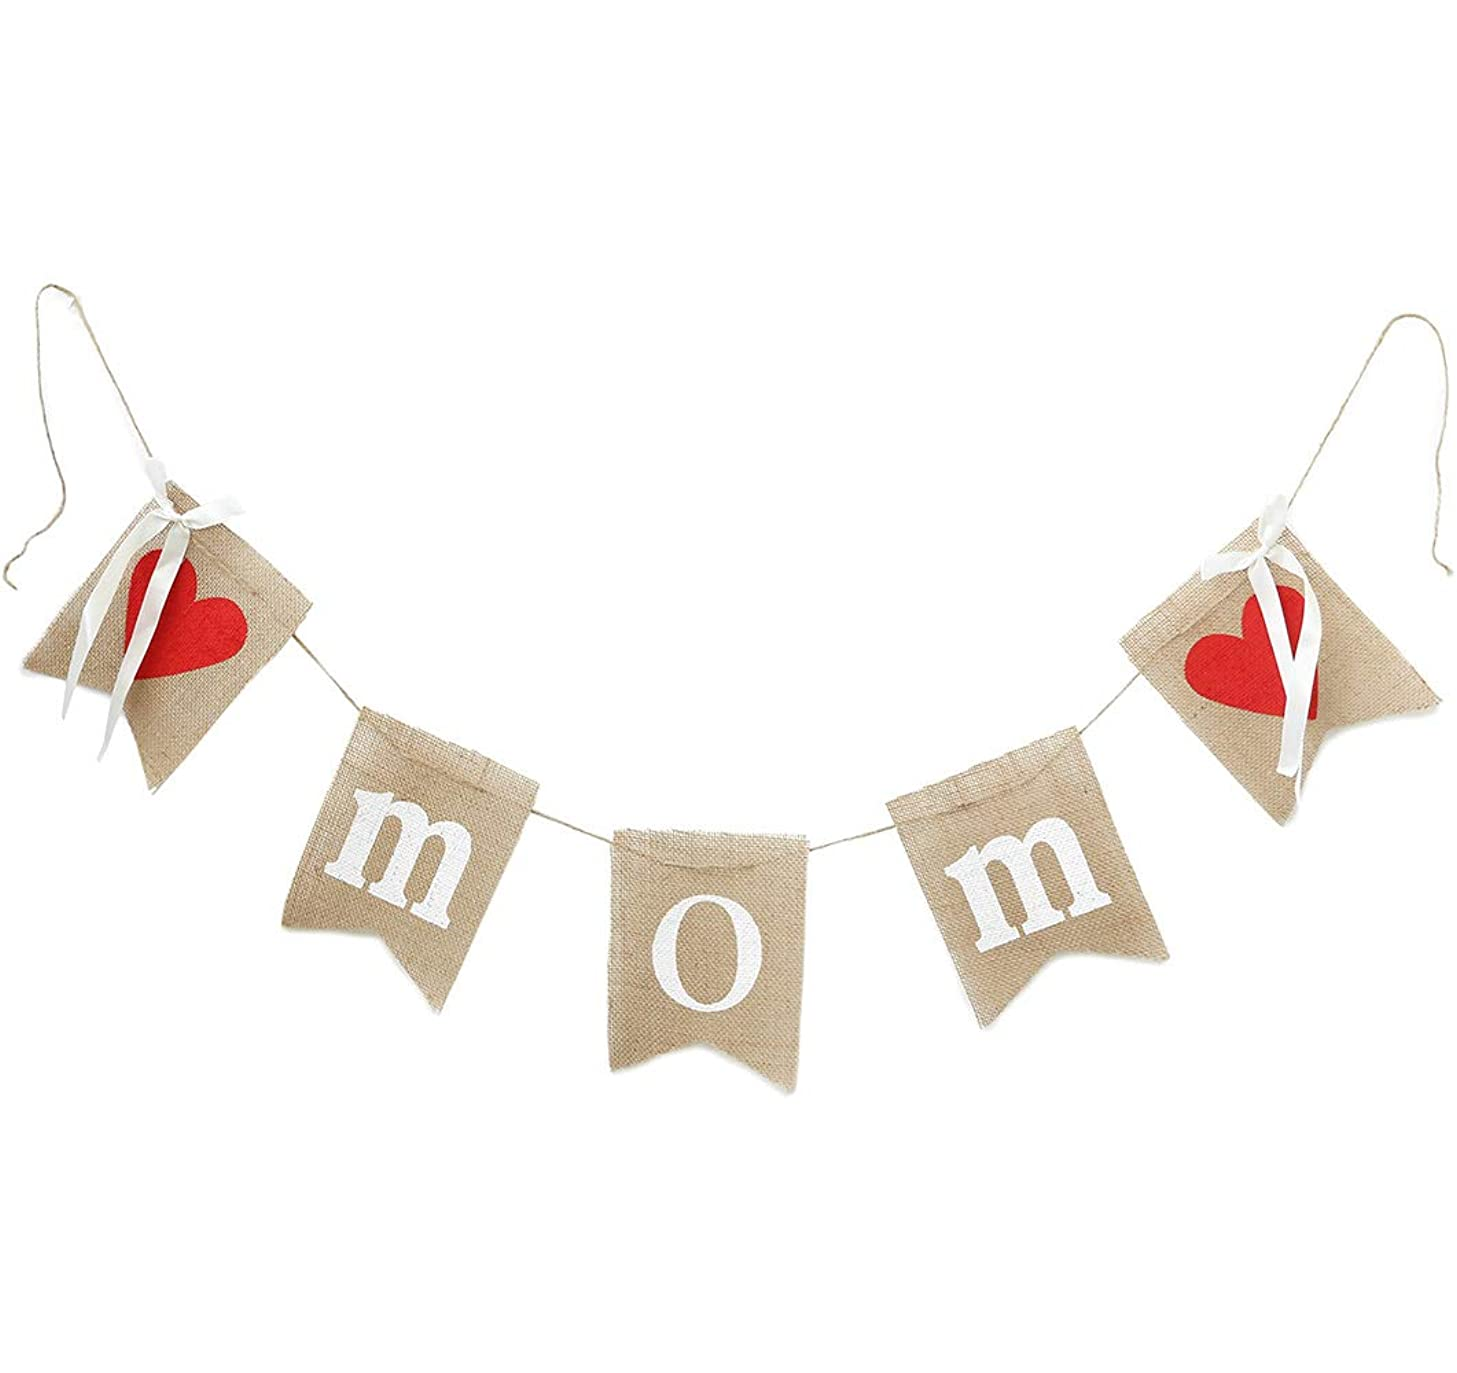 dealzEpic - Rustic MOM Burlap Banner with Red Hearts and Silk Ribbons for Mother-to-be / New Mom / Mom's Birthday Celebration Decoration or Photo Prop - 76 Inches